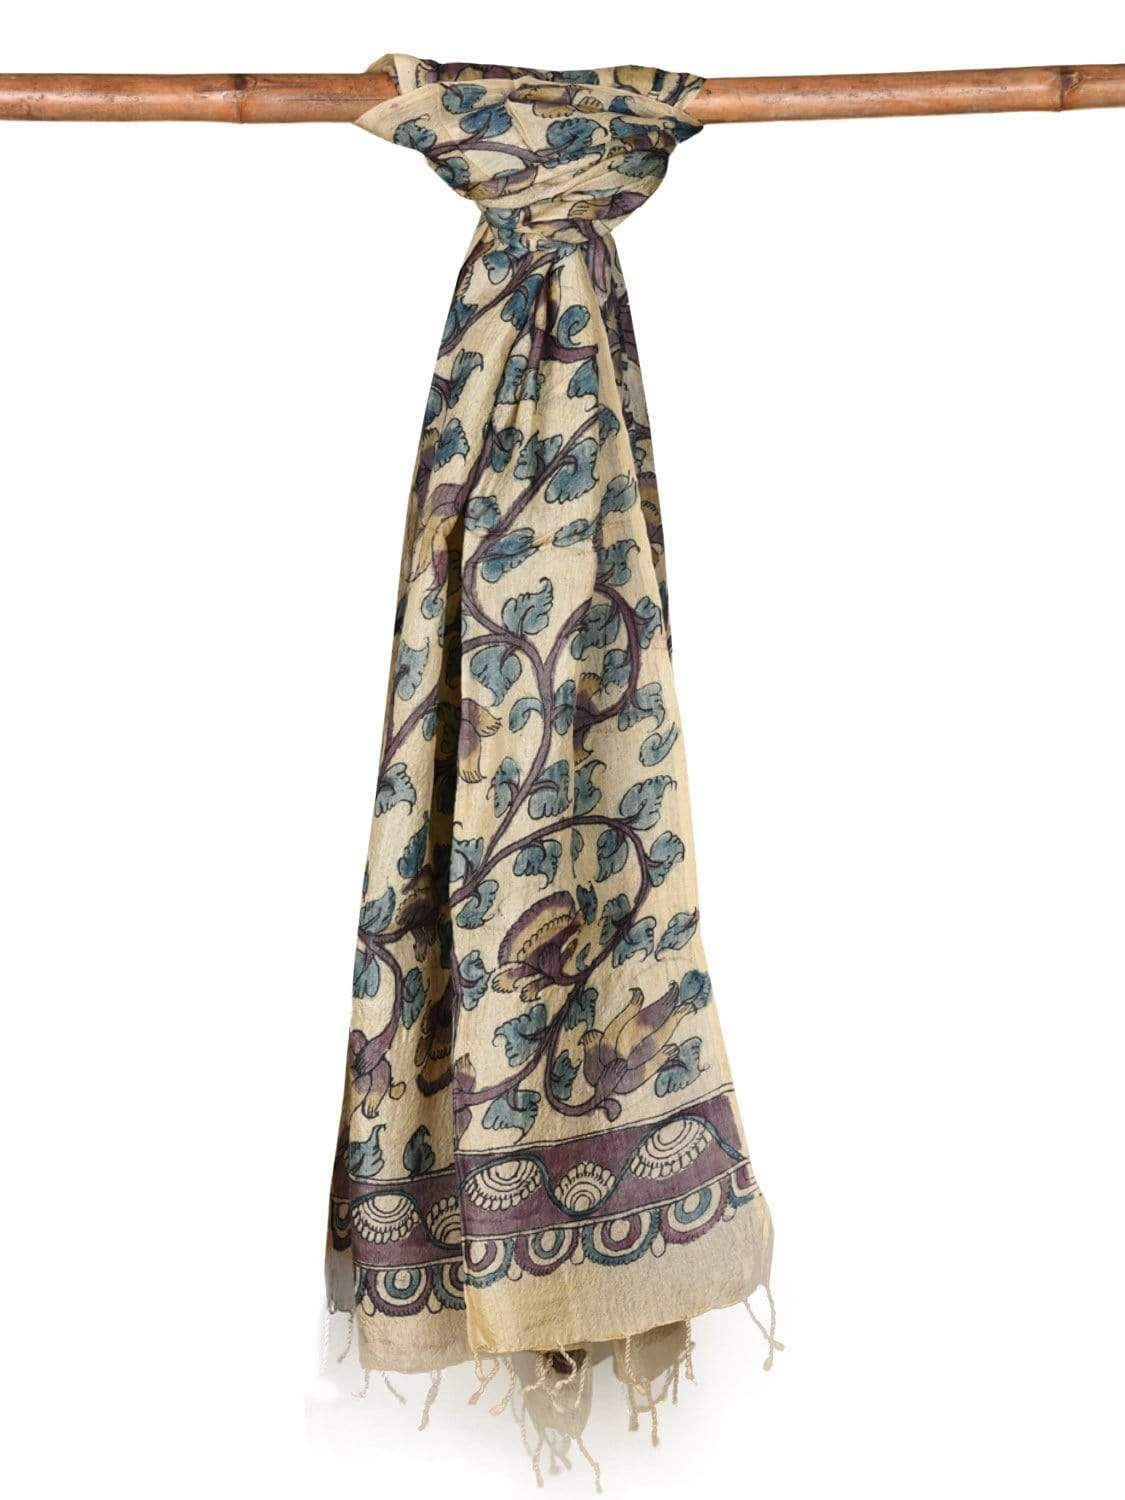 Cream Kalamkari Hand Painted Tussar Handloom Dupatta with Flowers and Birds Design ds1975